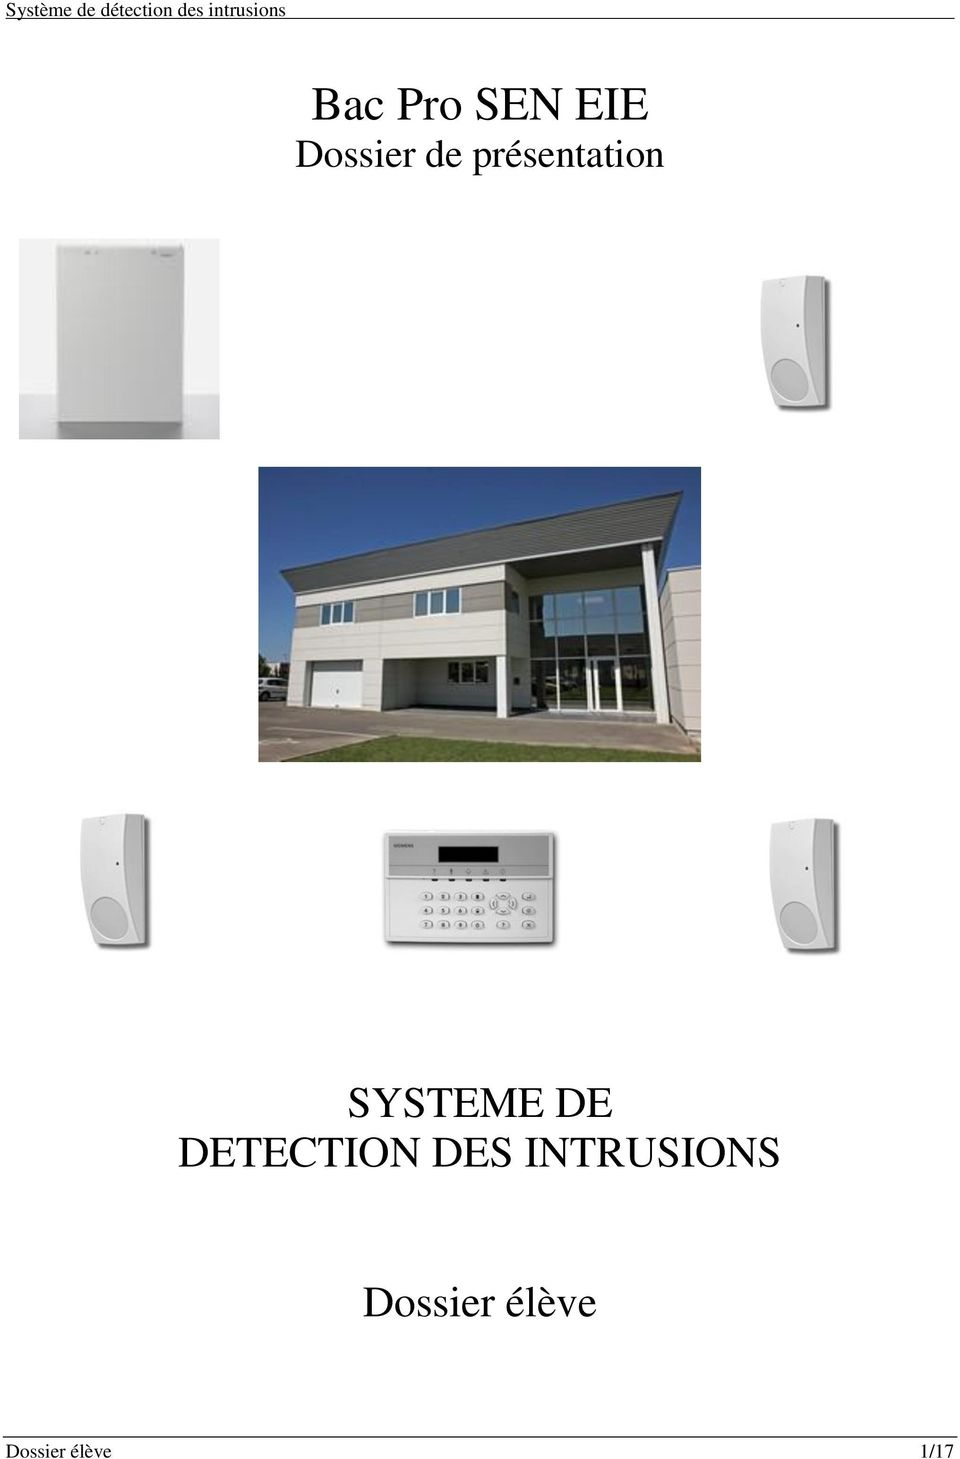 DETECTION DES INTRUSIONS